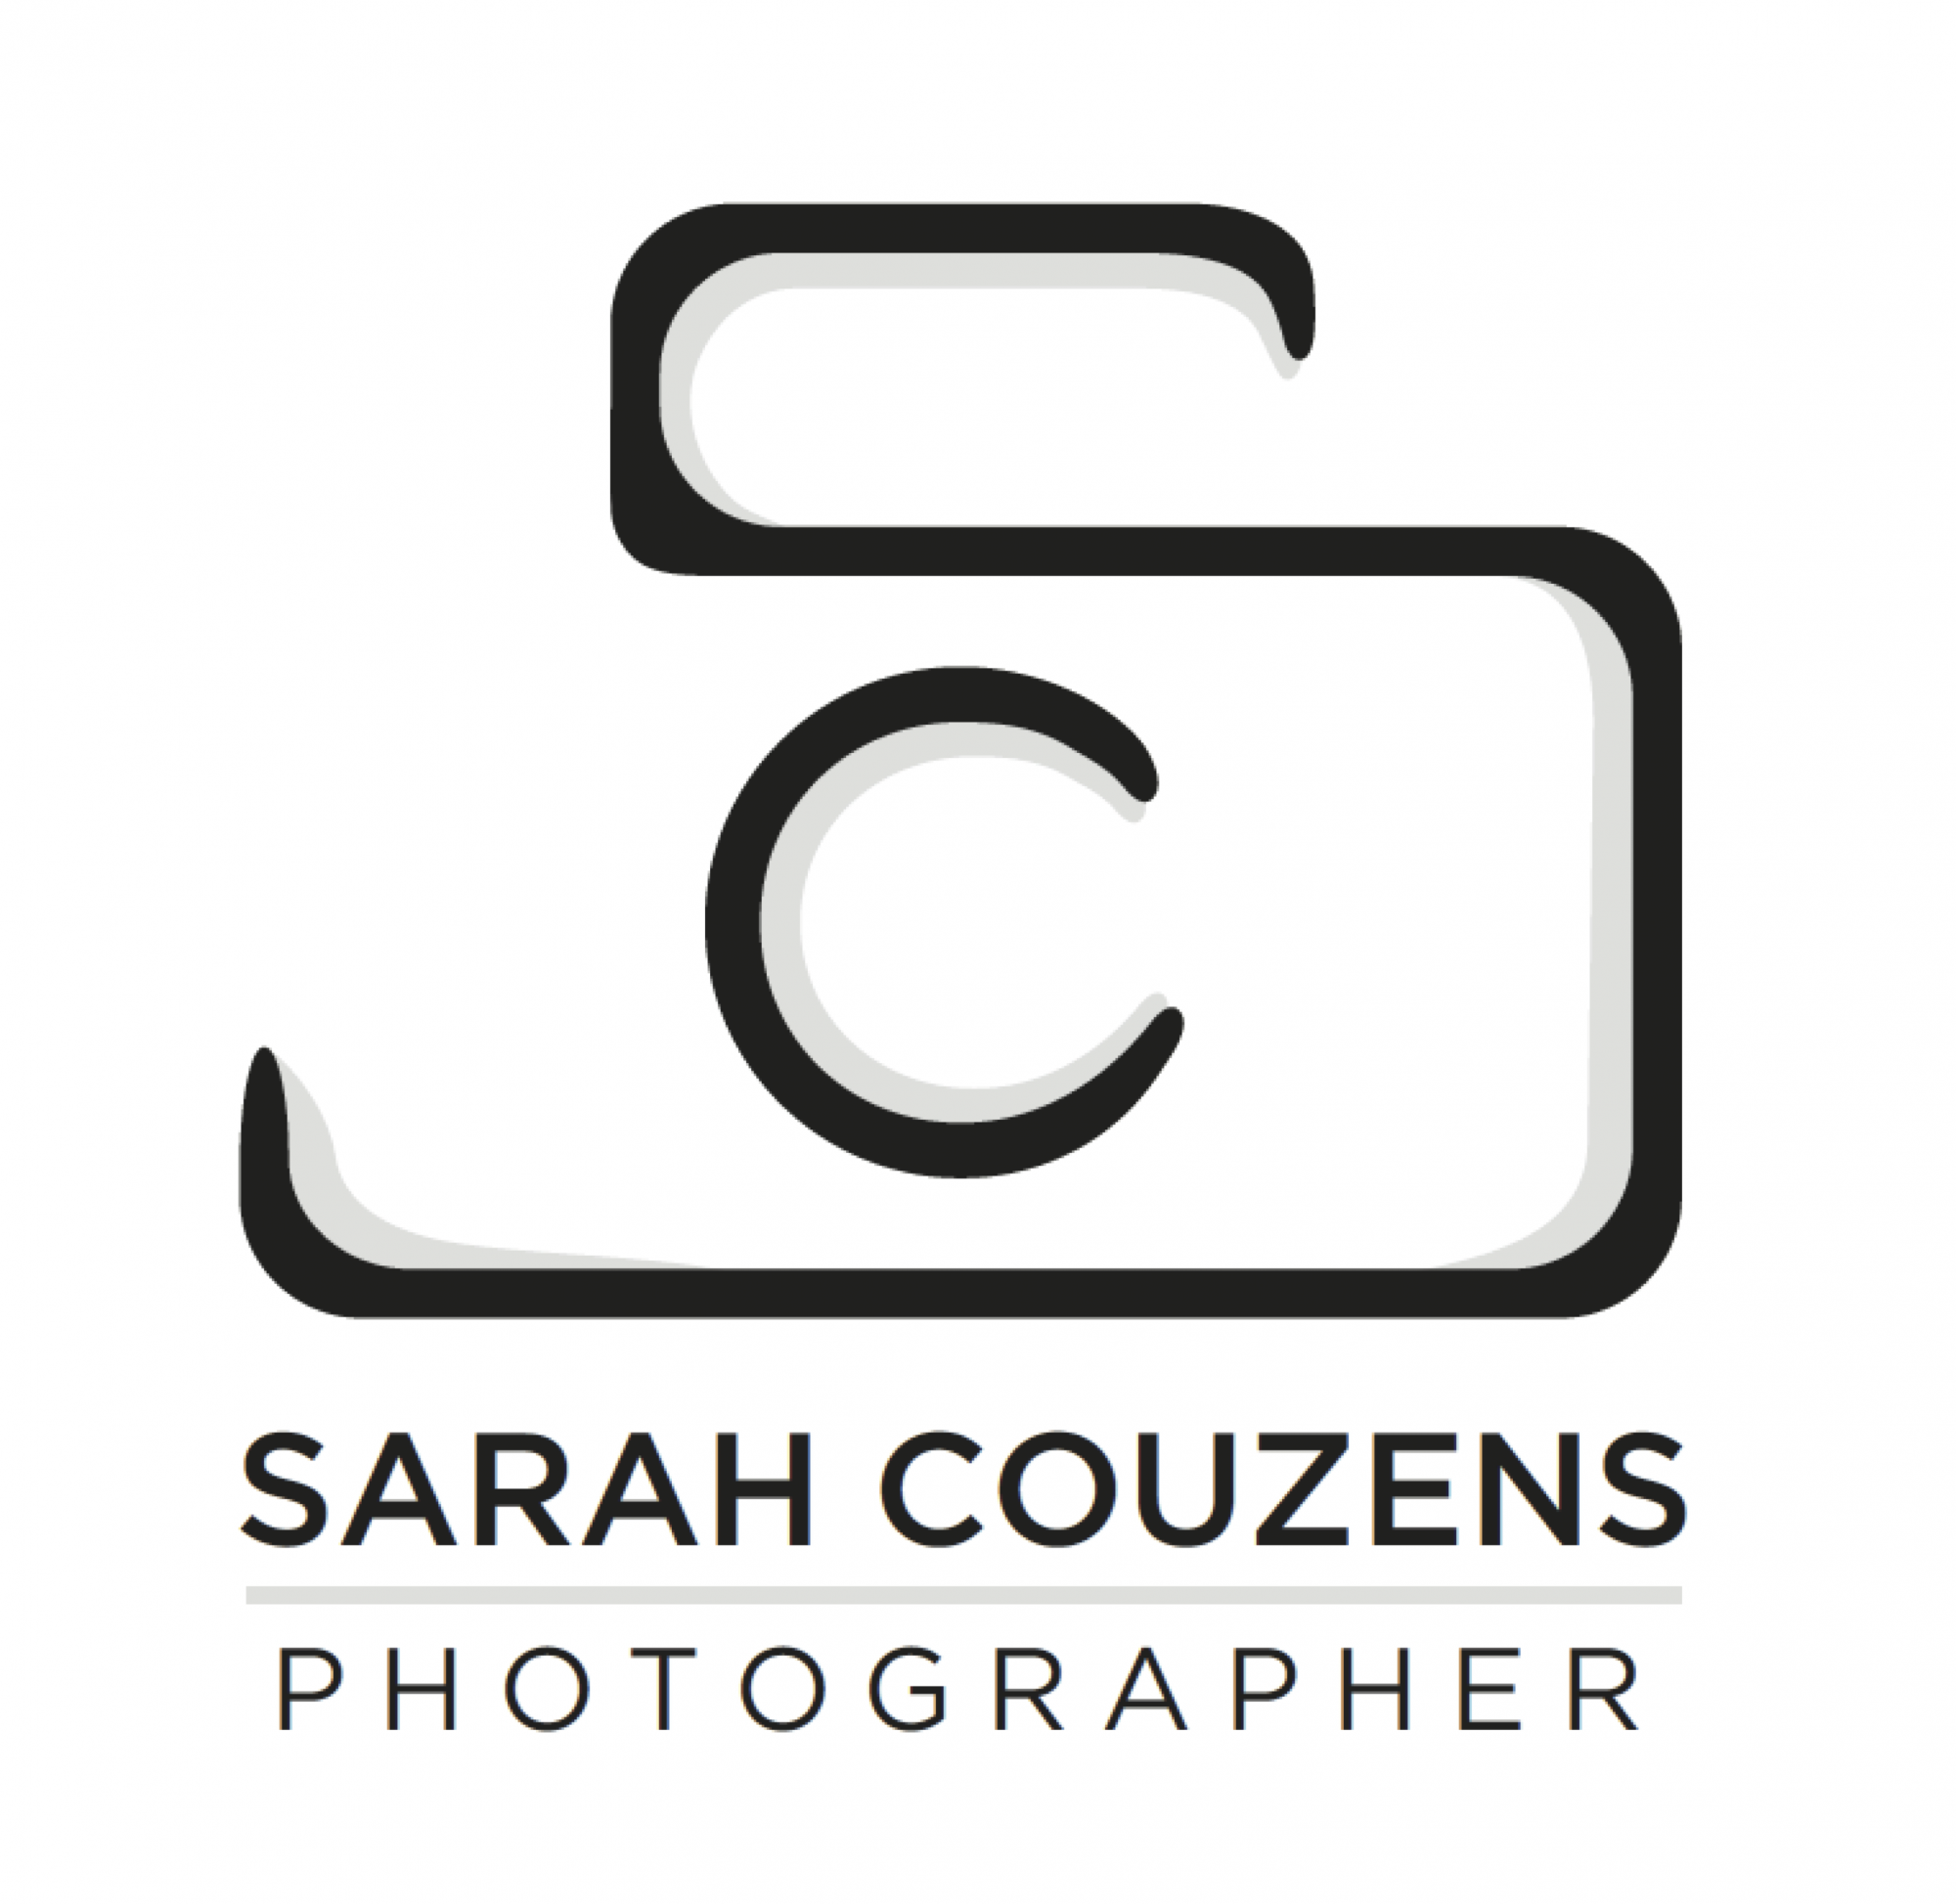 Sarah Couzens Photographer Brands Of The World Download Vector Logos And Logotypes